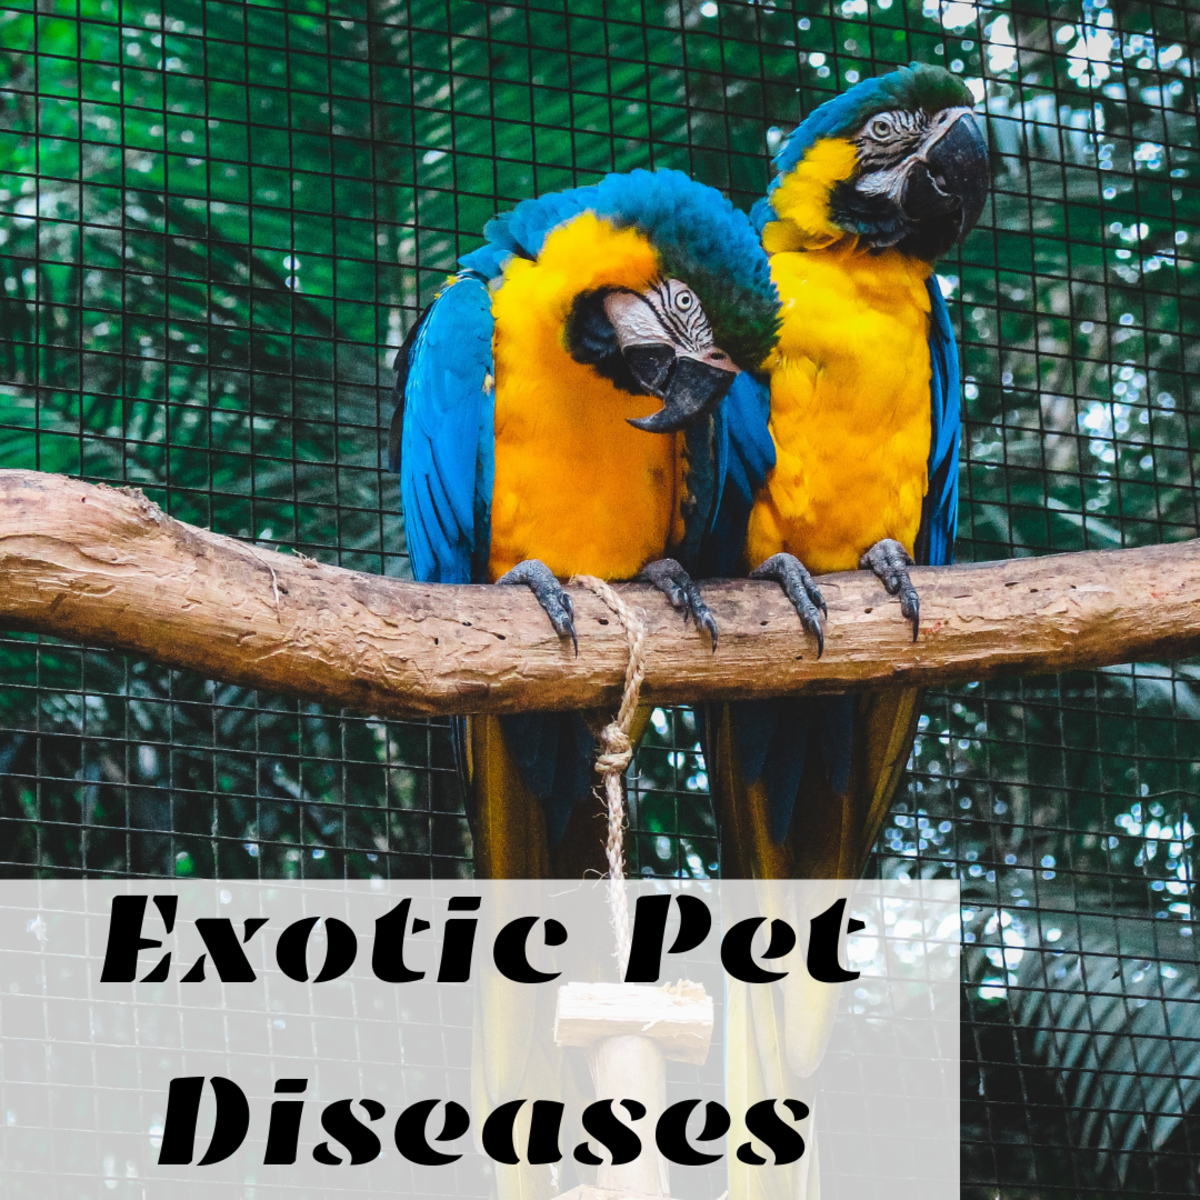 It's important to recognize and understand the different diseases that can affect exotic pets.